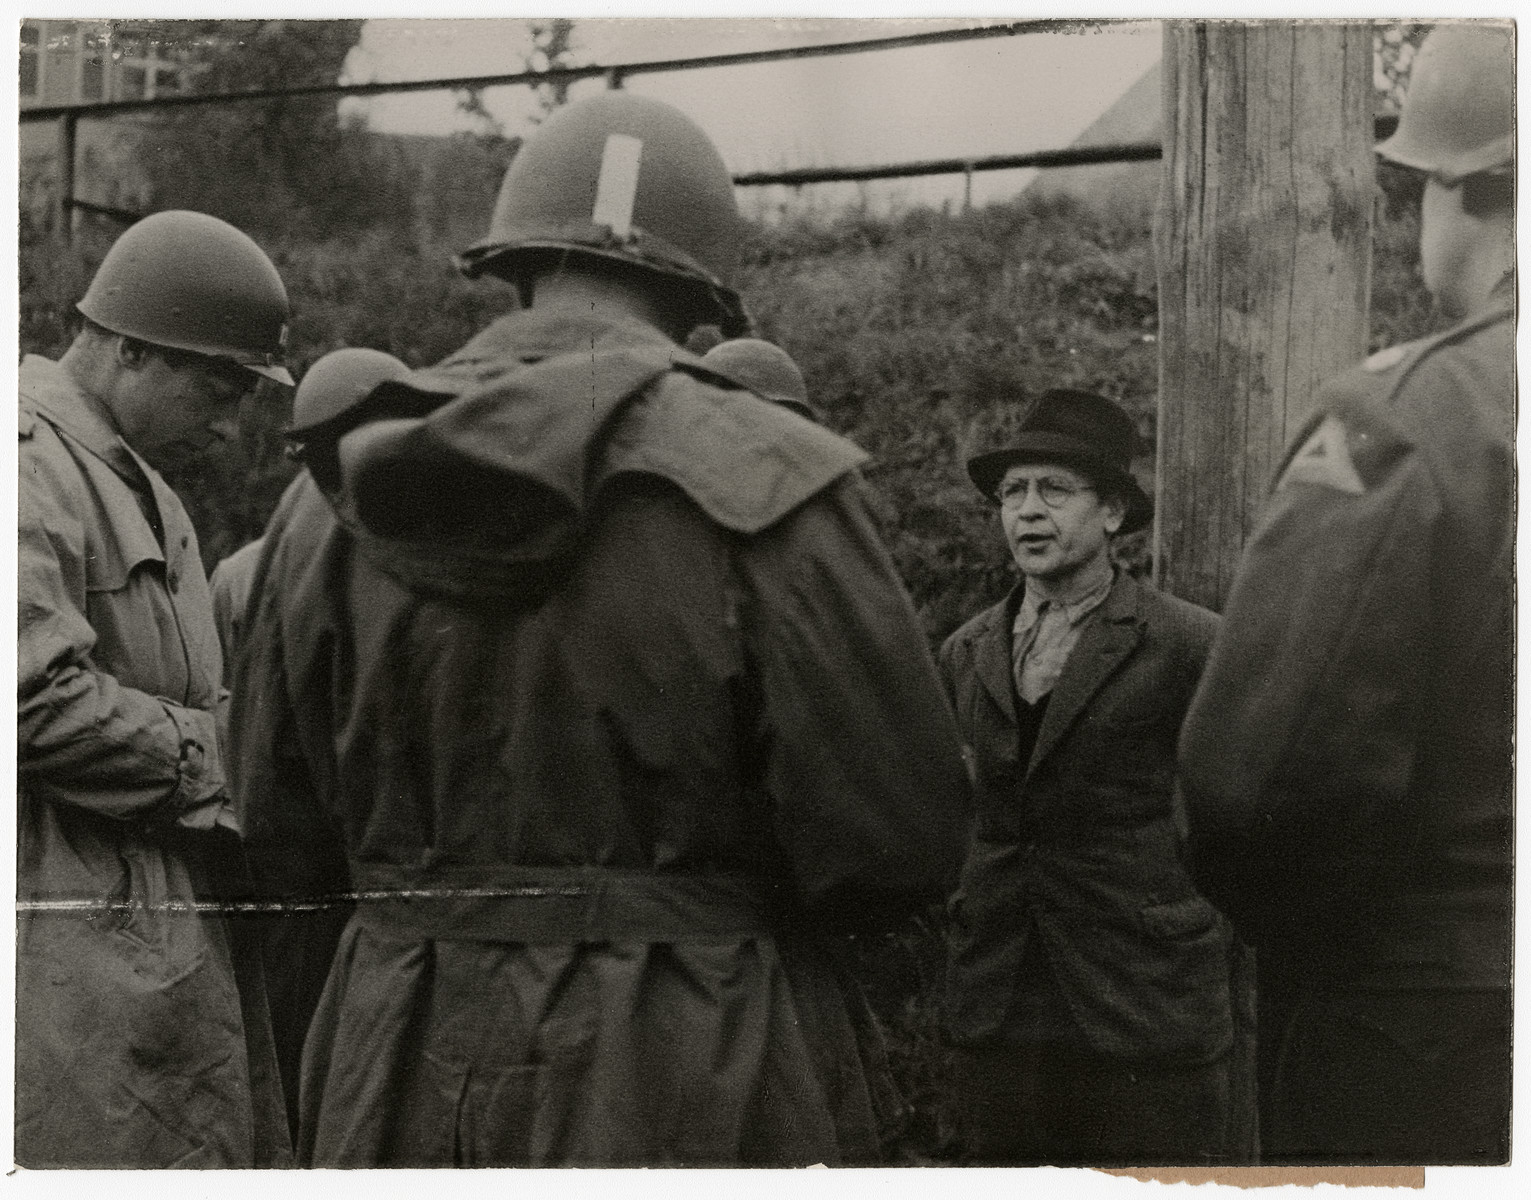 A German spy says his last words before his execution.  Original caption reads:  Nazi Spy Shot After Military Trial Richard Jarczyk, Nazi soldier, who became a spy in civilian clothes, was executed April 23, 1945, after court trial by a military commission of the Seventh U.S. Army. After he had discarded his uniform, Jarczyk, former member of the Volks Grenadier Division, approached U.S. Army officials and offered his services in establishing a civilian government in an occupied area of the Reich. U. S. Military authorities discovered his true role and he was brought to trial April 6, when he confessed special training for sabotage and espionage. The penalty was death by a firing squad.   THIS PHOTO SHOWS: The doomed spy speaks his last words before being shot.